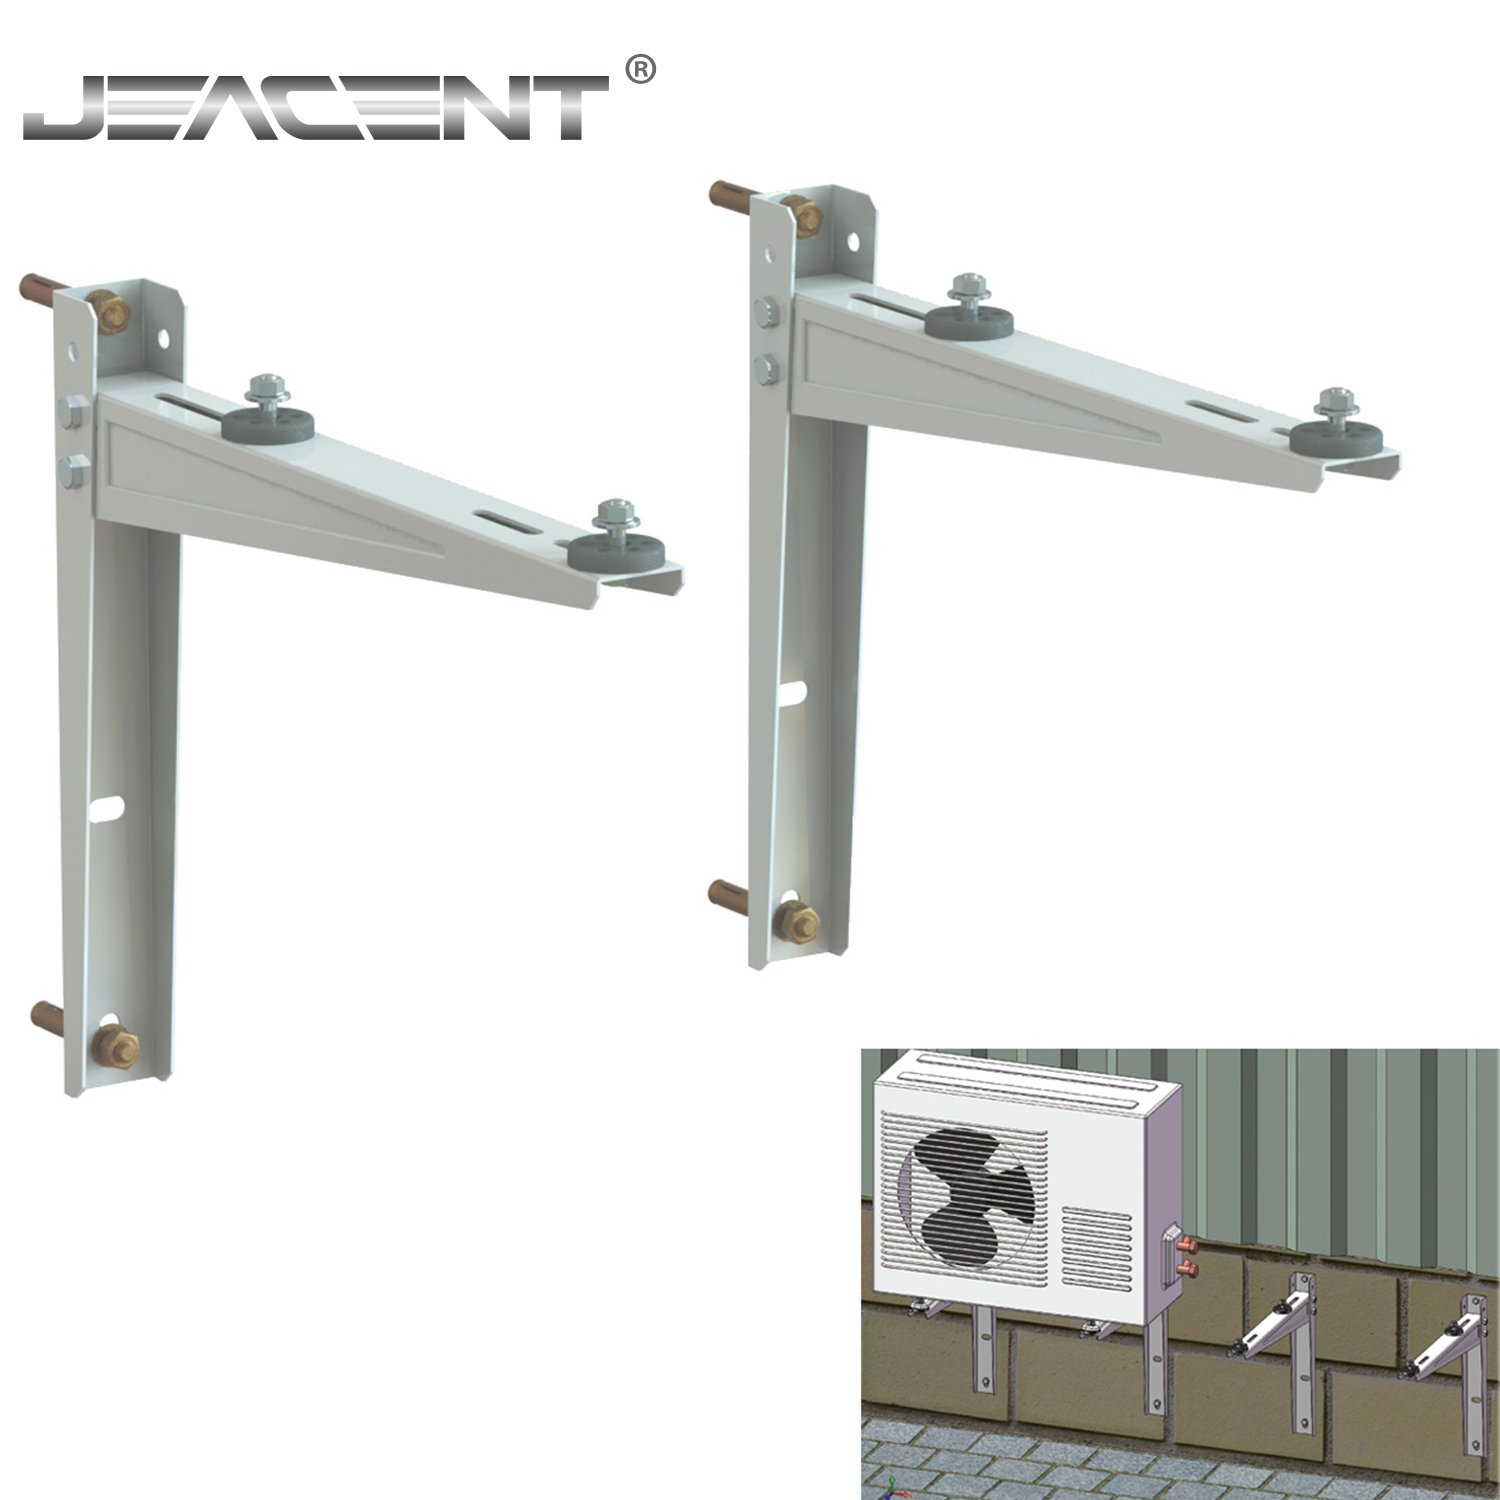 Mini Split Wall Mounting Bracket for Ductless Air Conditioner 9,000-36,000BTU Condensers